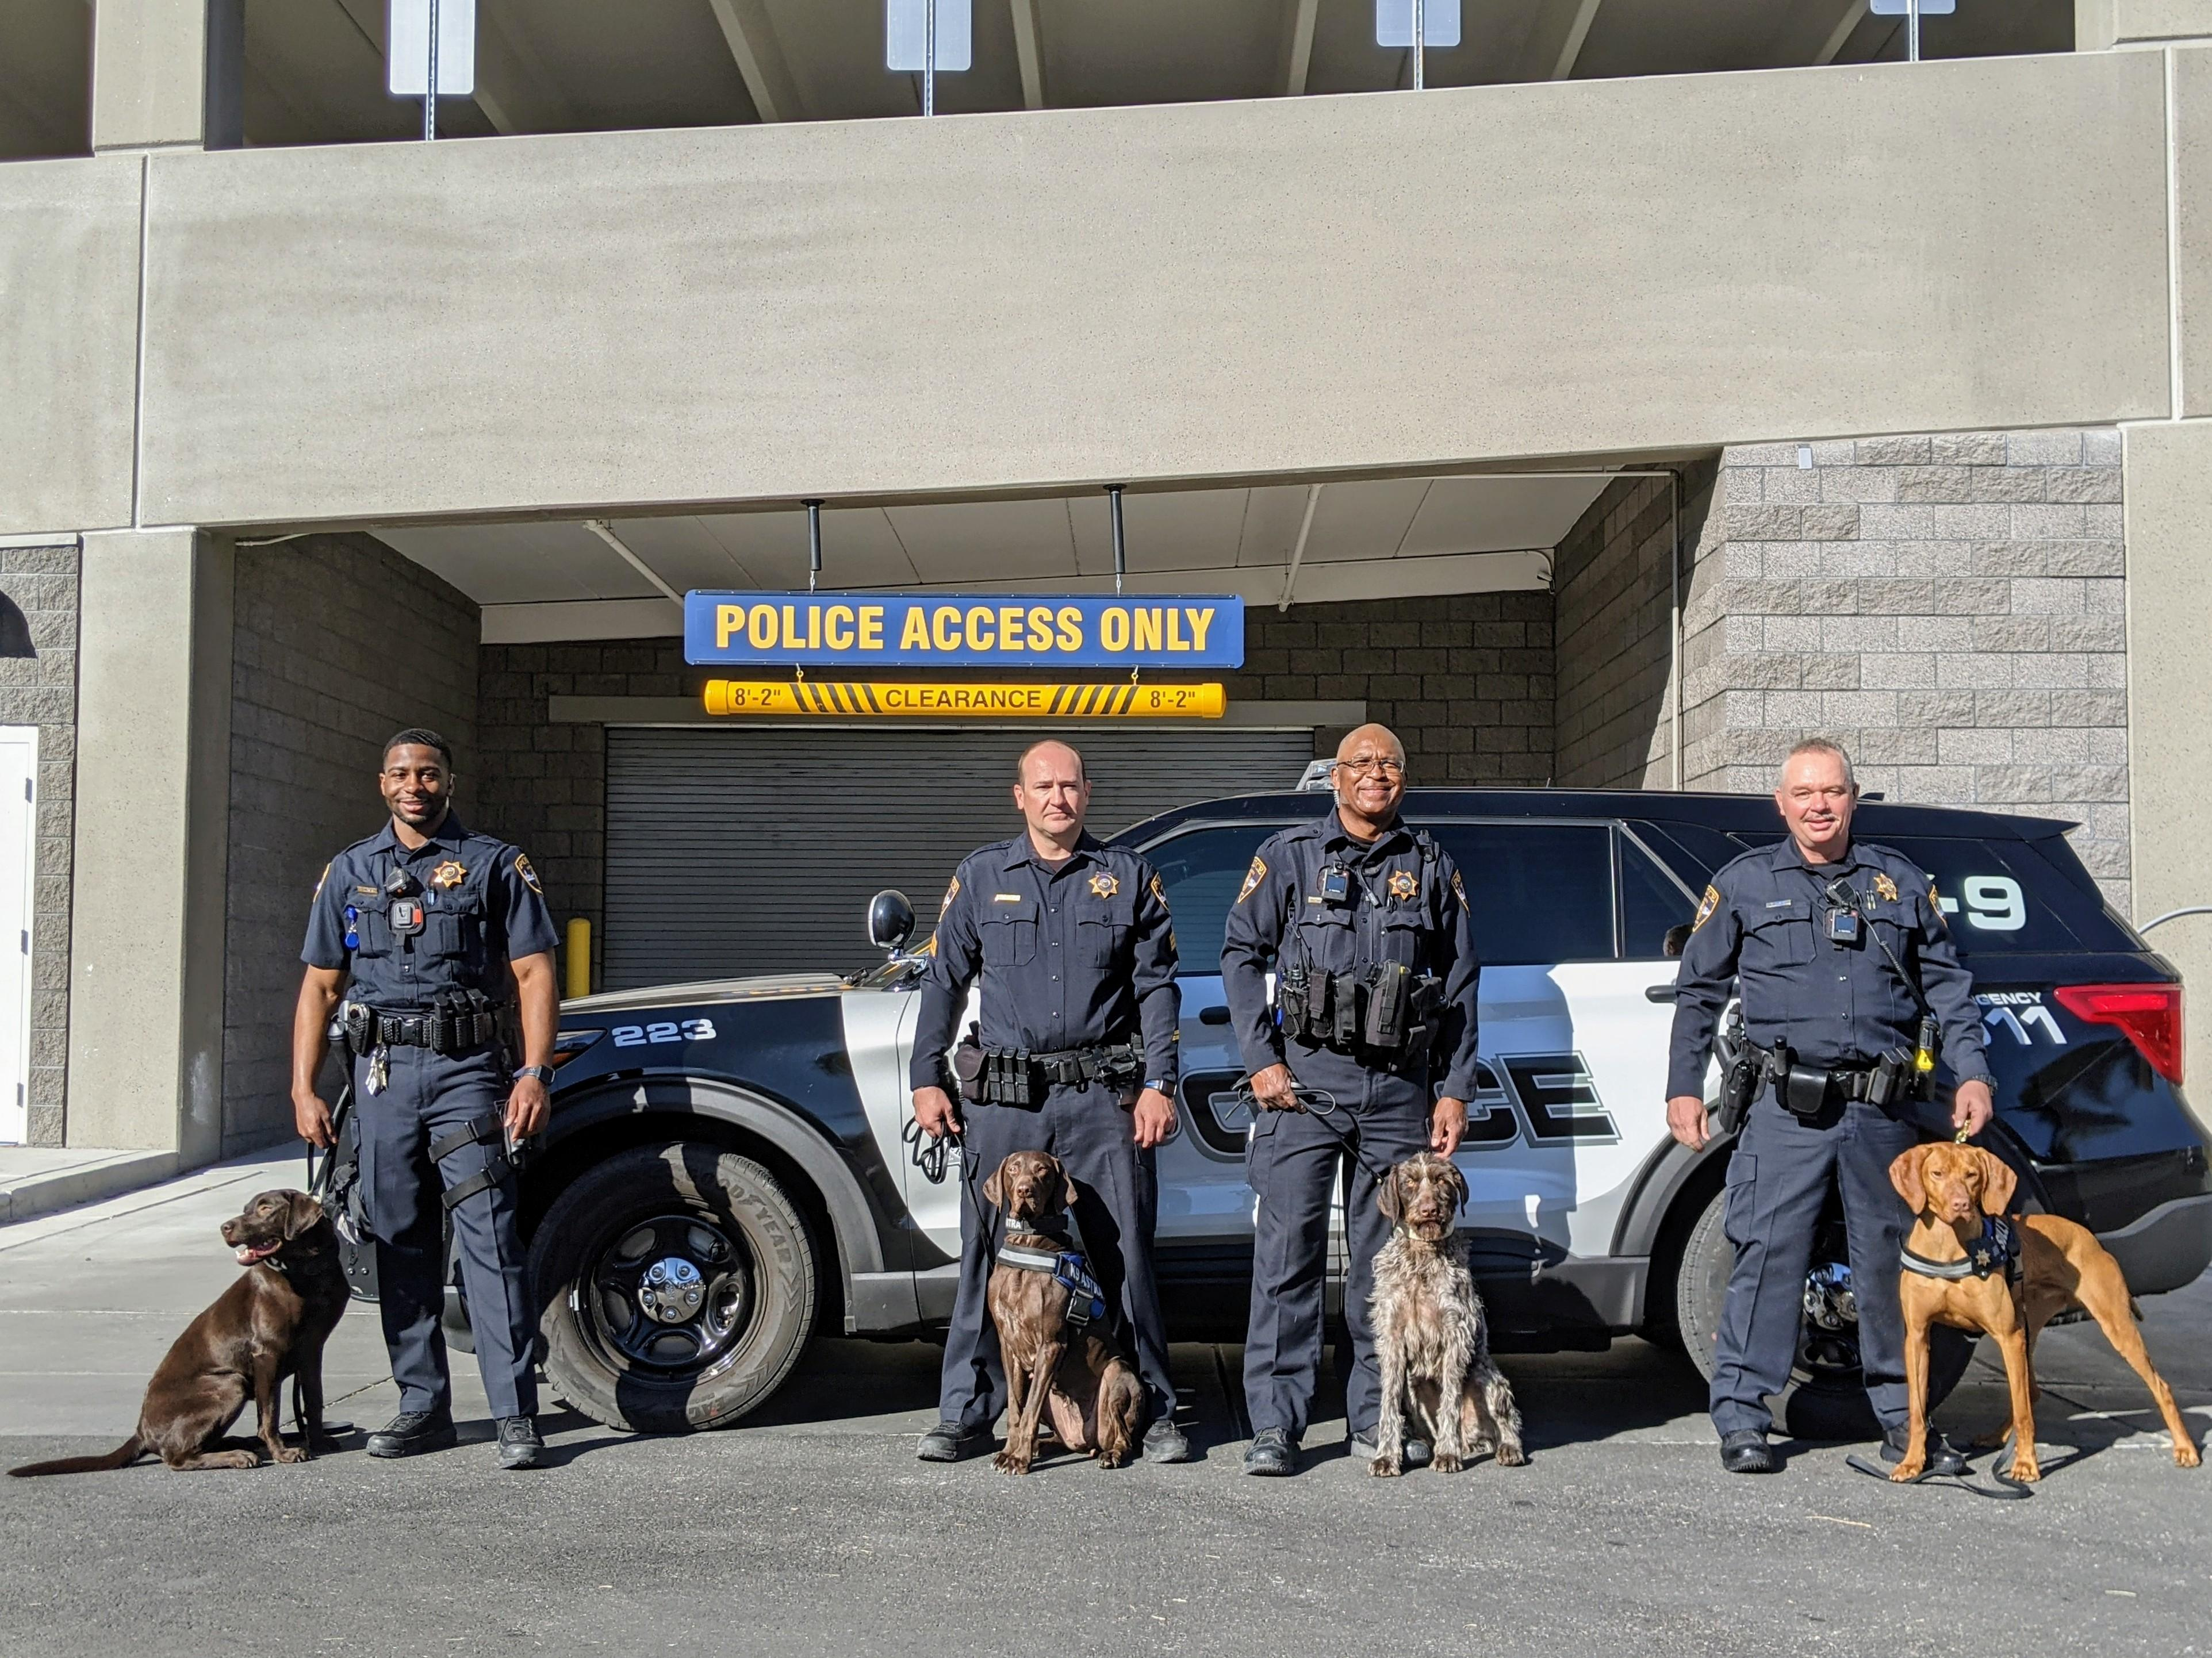 Police men and police dogs standing infront of a police car